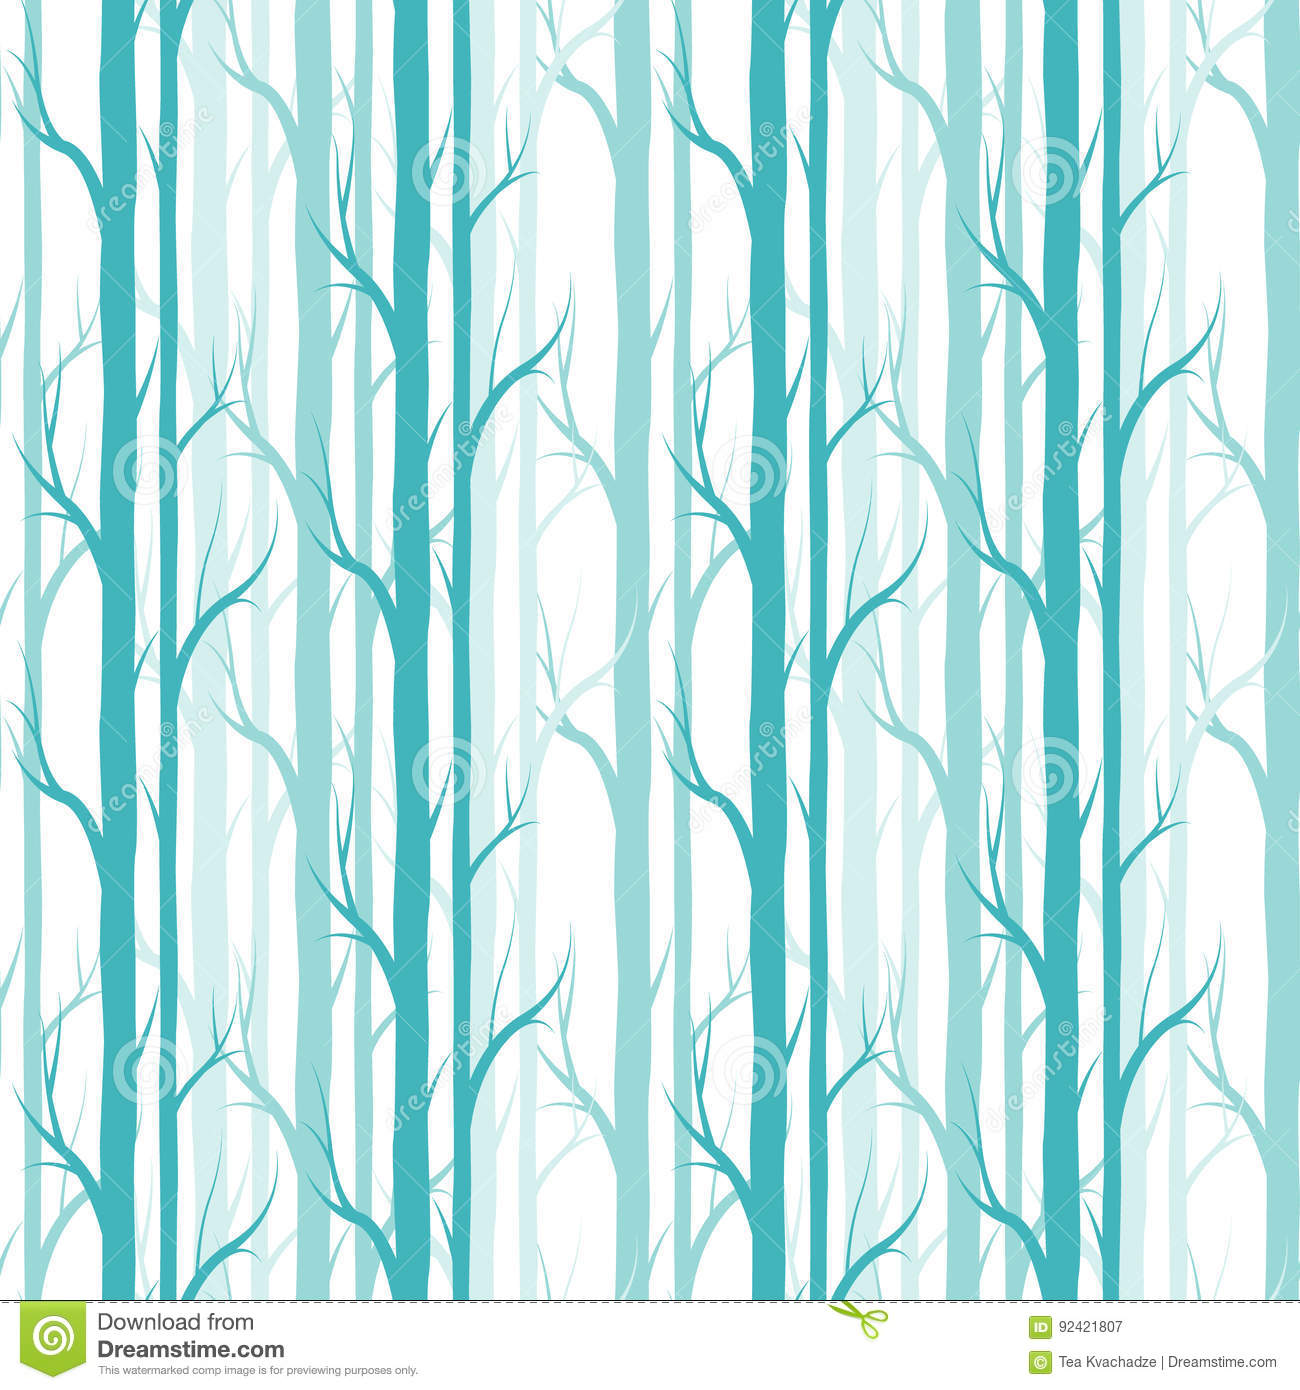 Birch Tree Seamless Pattern Vector Fabricdesign Element For Wallpapers Web Site Background Baby Shower Invitation Birthday Card Illustration 92421807 Megapixl